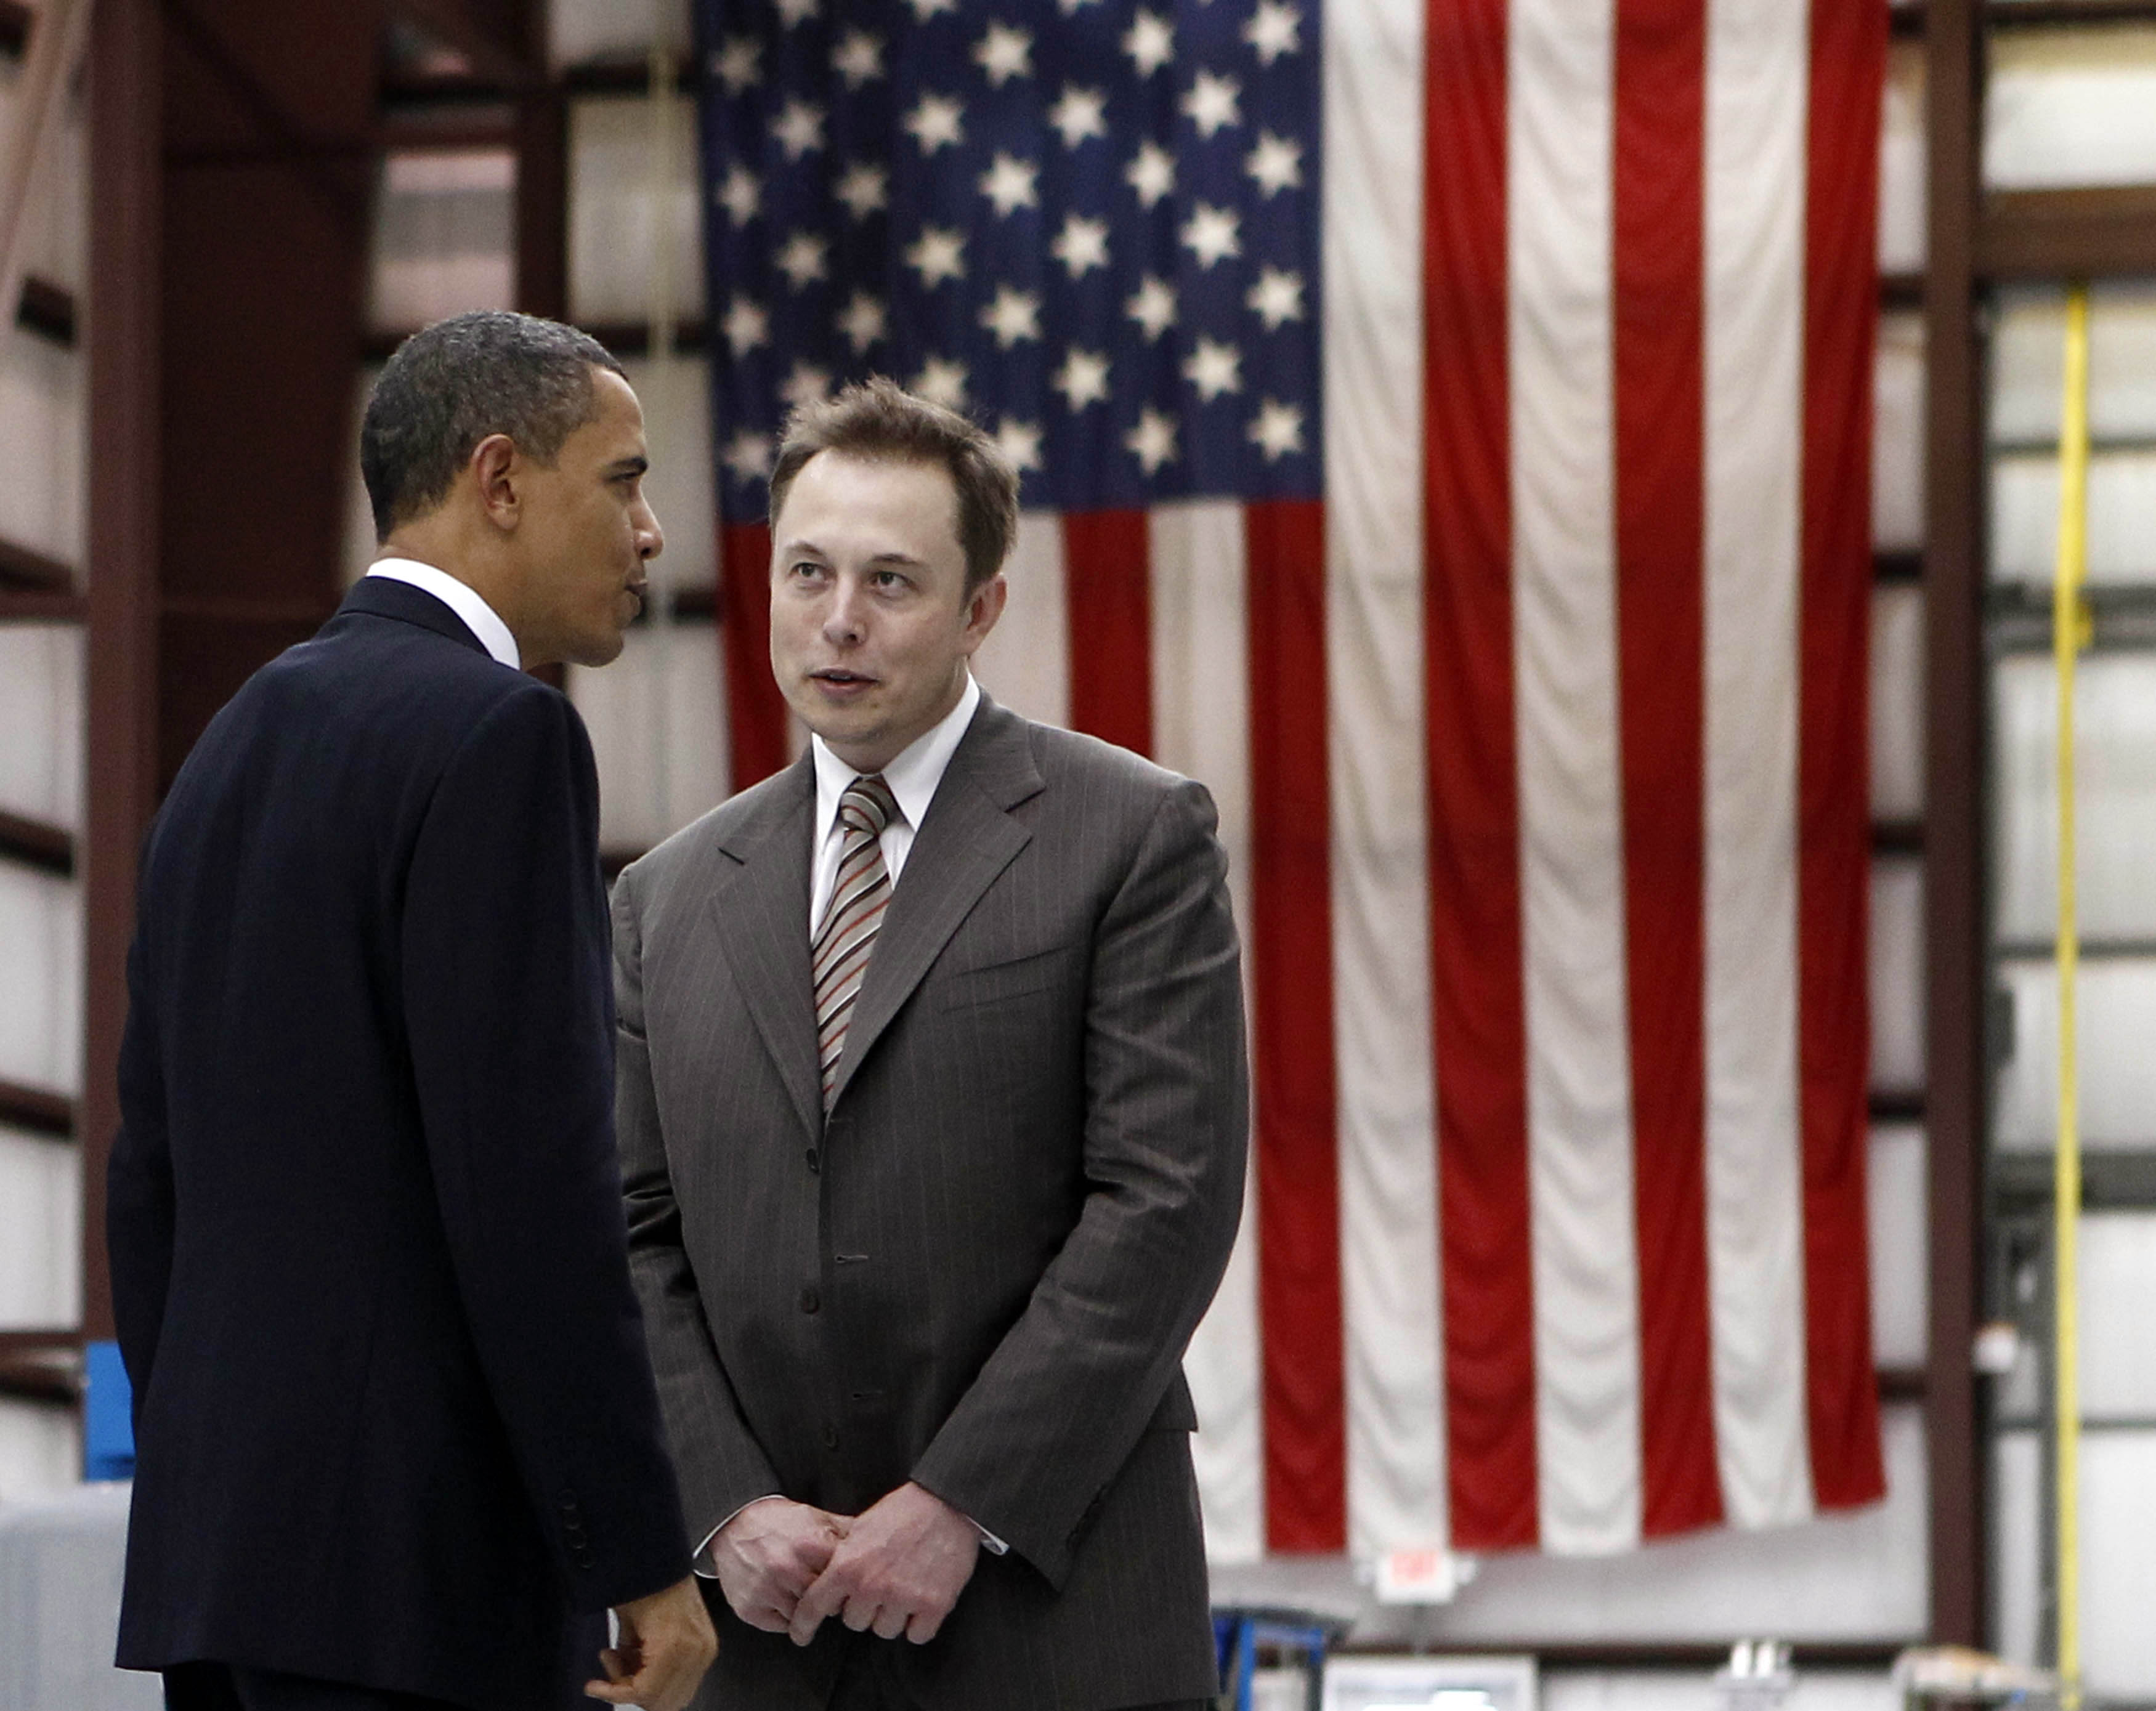 U.S. President Barack Obama (L) speaks to Head of SpaceX Elon Musk. @REUTERS/Jim Young